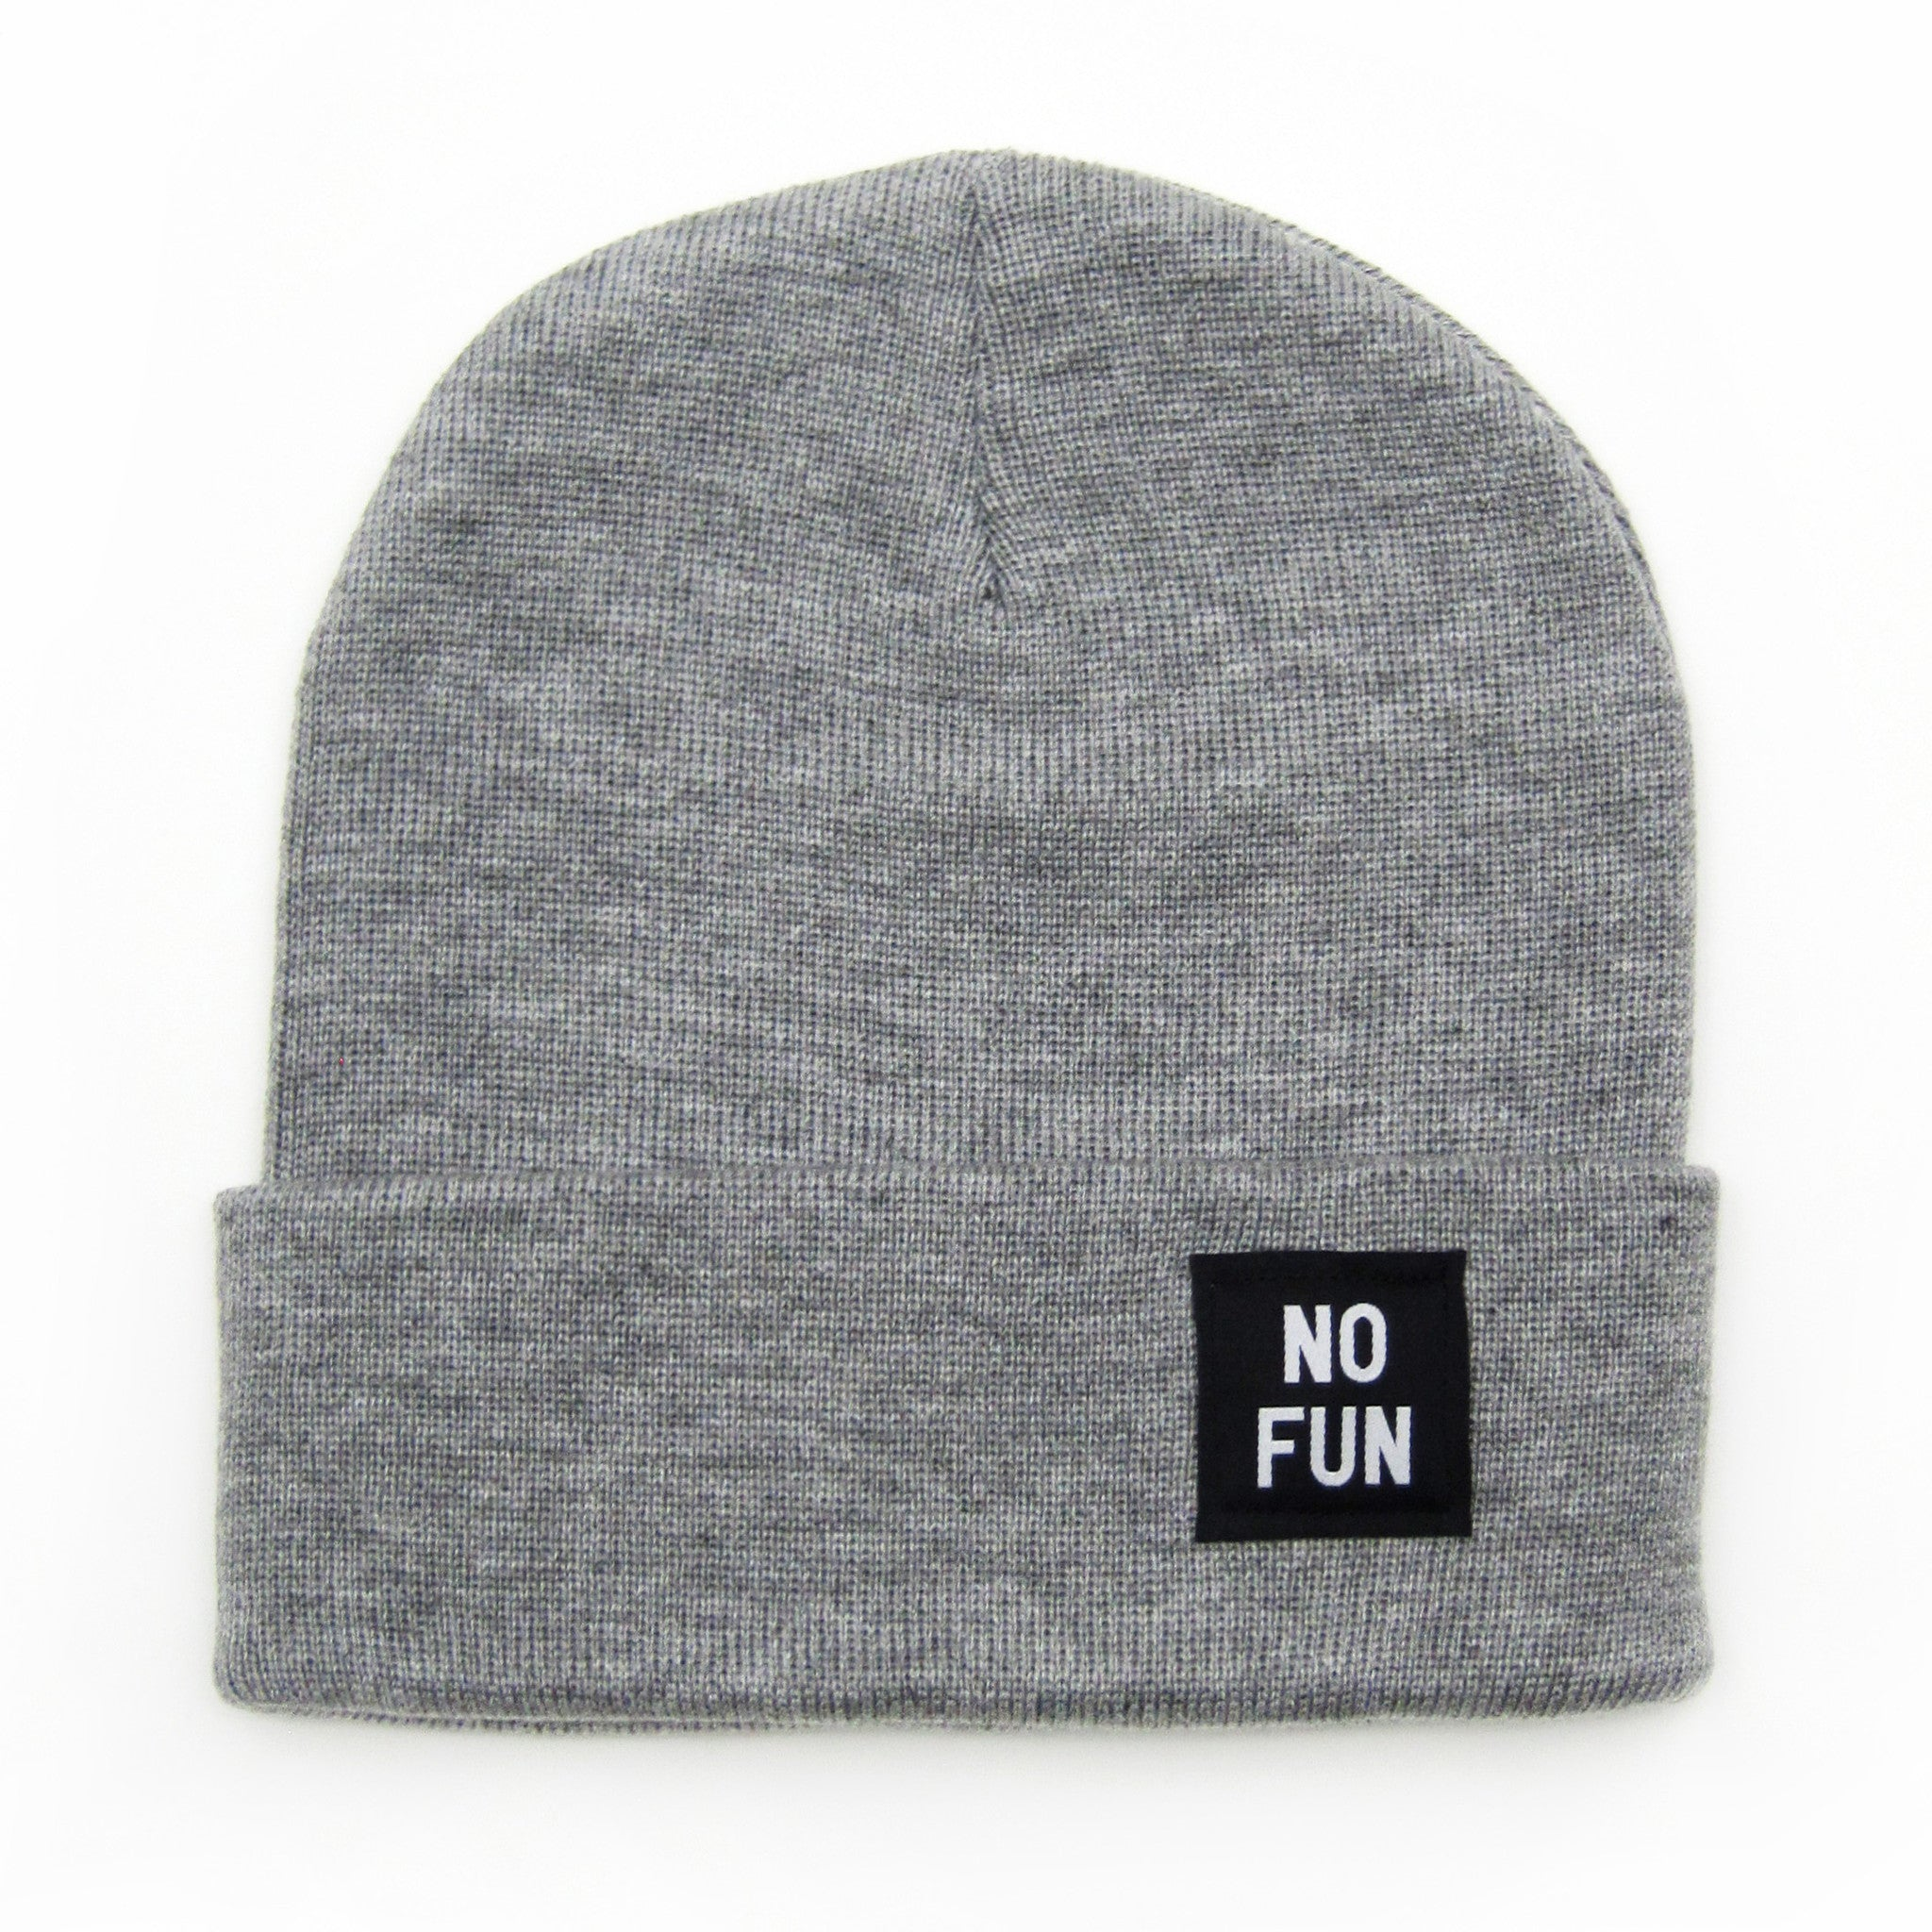 "No Fun Press - original classic ""No Fun"" labelled beanie toque - heather grey"